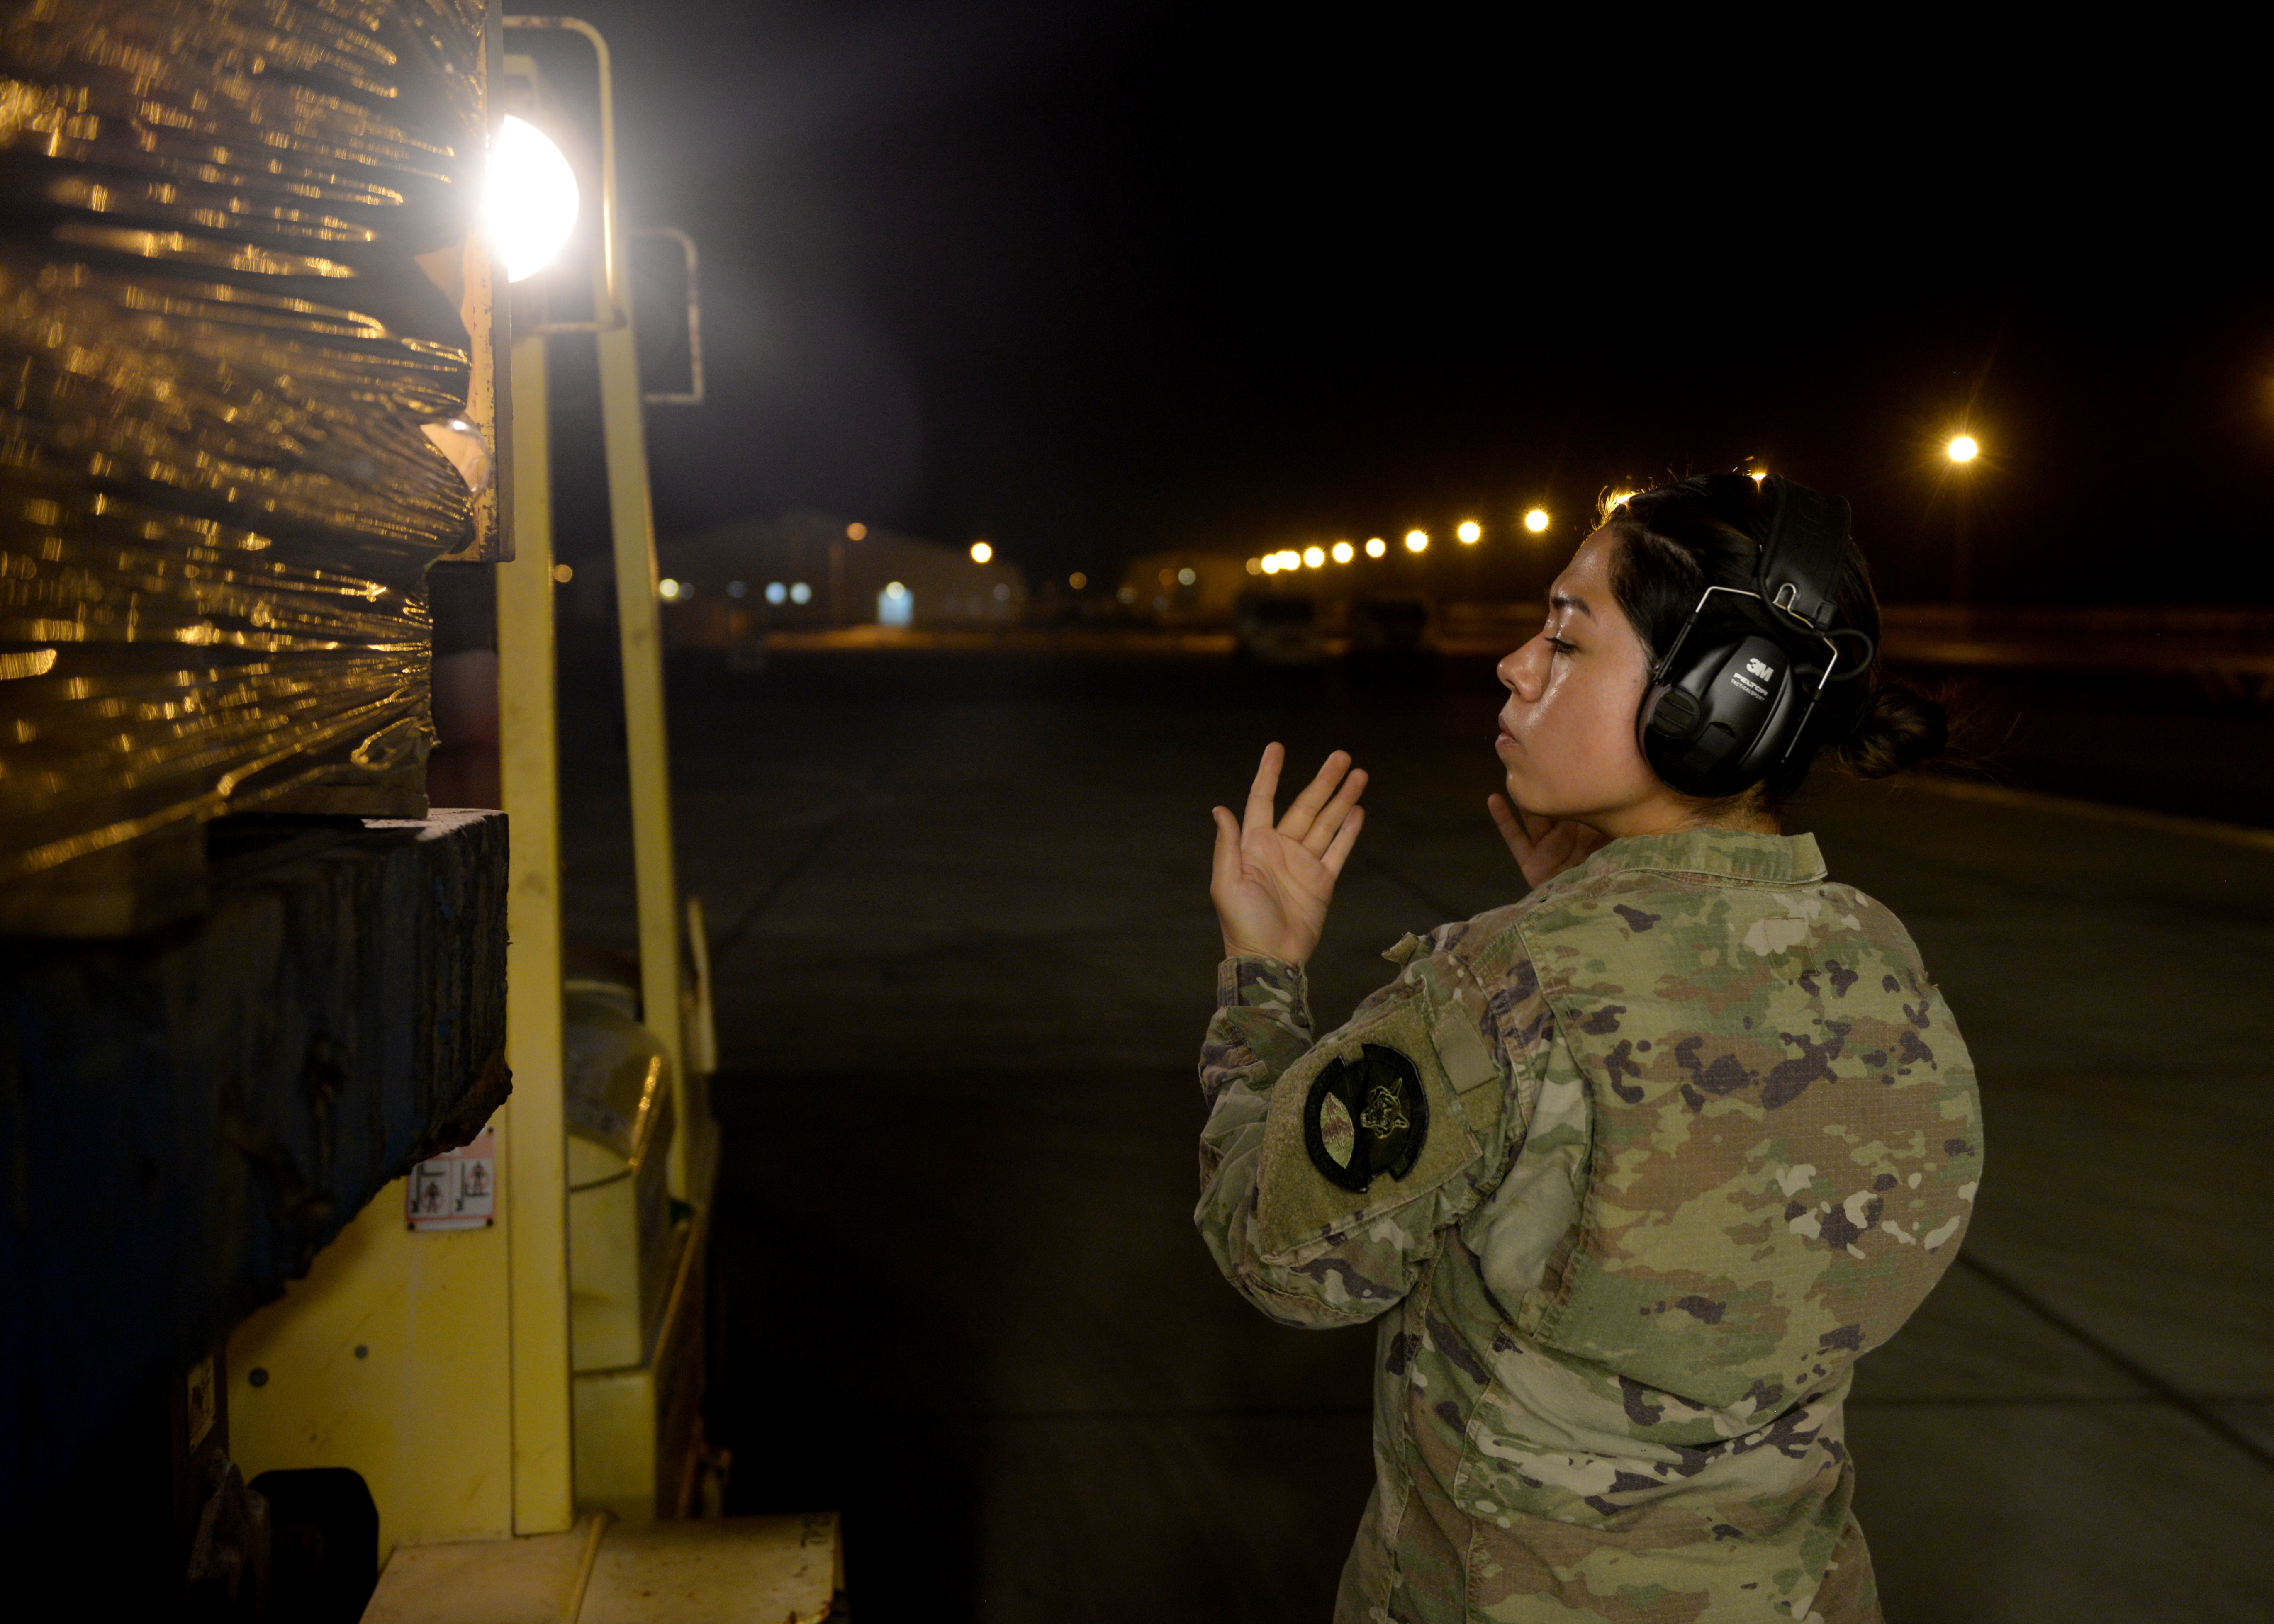 U.S. Air Force Senior Airman Lucy DeJesus, mobile aerial porter for the 435th Contingency Response Group, Ramstein Air Base, Germany, currently at Camp Lemonnier, Djibouti, supporting Combined Joint Task Force-Horn of Africa (CJTF-HOA), guides a forklift operator unloading supplies from the U.S. Agency for International Development (USAID) at Camp Lemonnier, March 31, 2019, for the U.S. Department of Defense's (DoD) humanitarian relief effort in the Republic of Mozambique and surrounding areas following Cyclone Idai. Teams supporting CJTF-HOA, which is leading the DoD relief effort, prepared cargo for transport following a call for assistance from the USAID Disaster Assistance Response Team. (U.S. Air Force photo by Staff Sgt. Franklin R. Ramos)